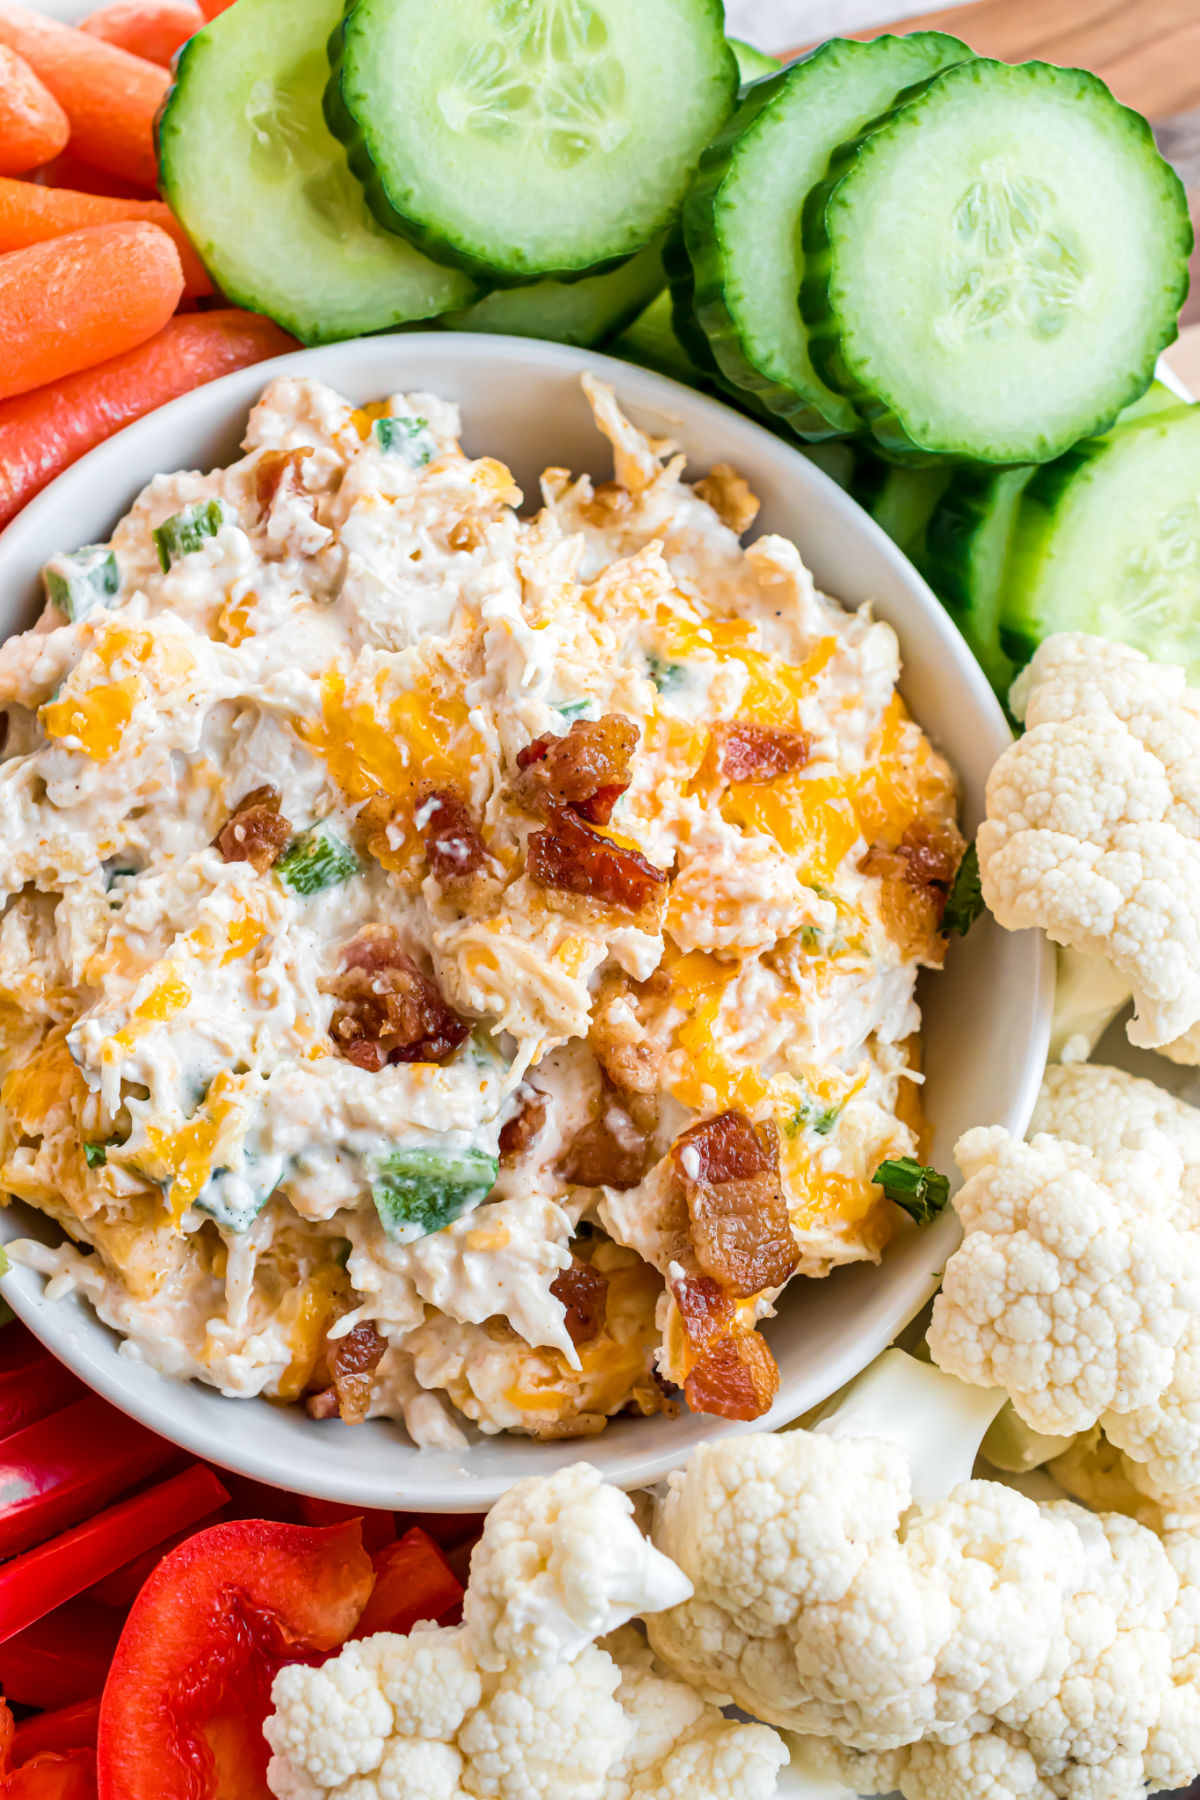 Jalapeno popper chicken served as a dip with fresh vegetables.